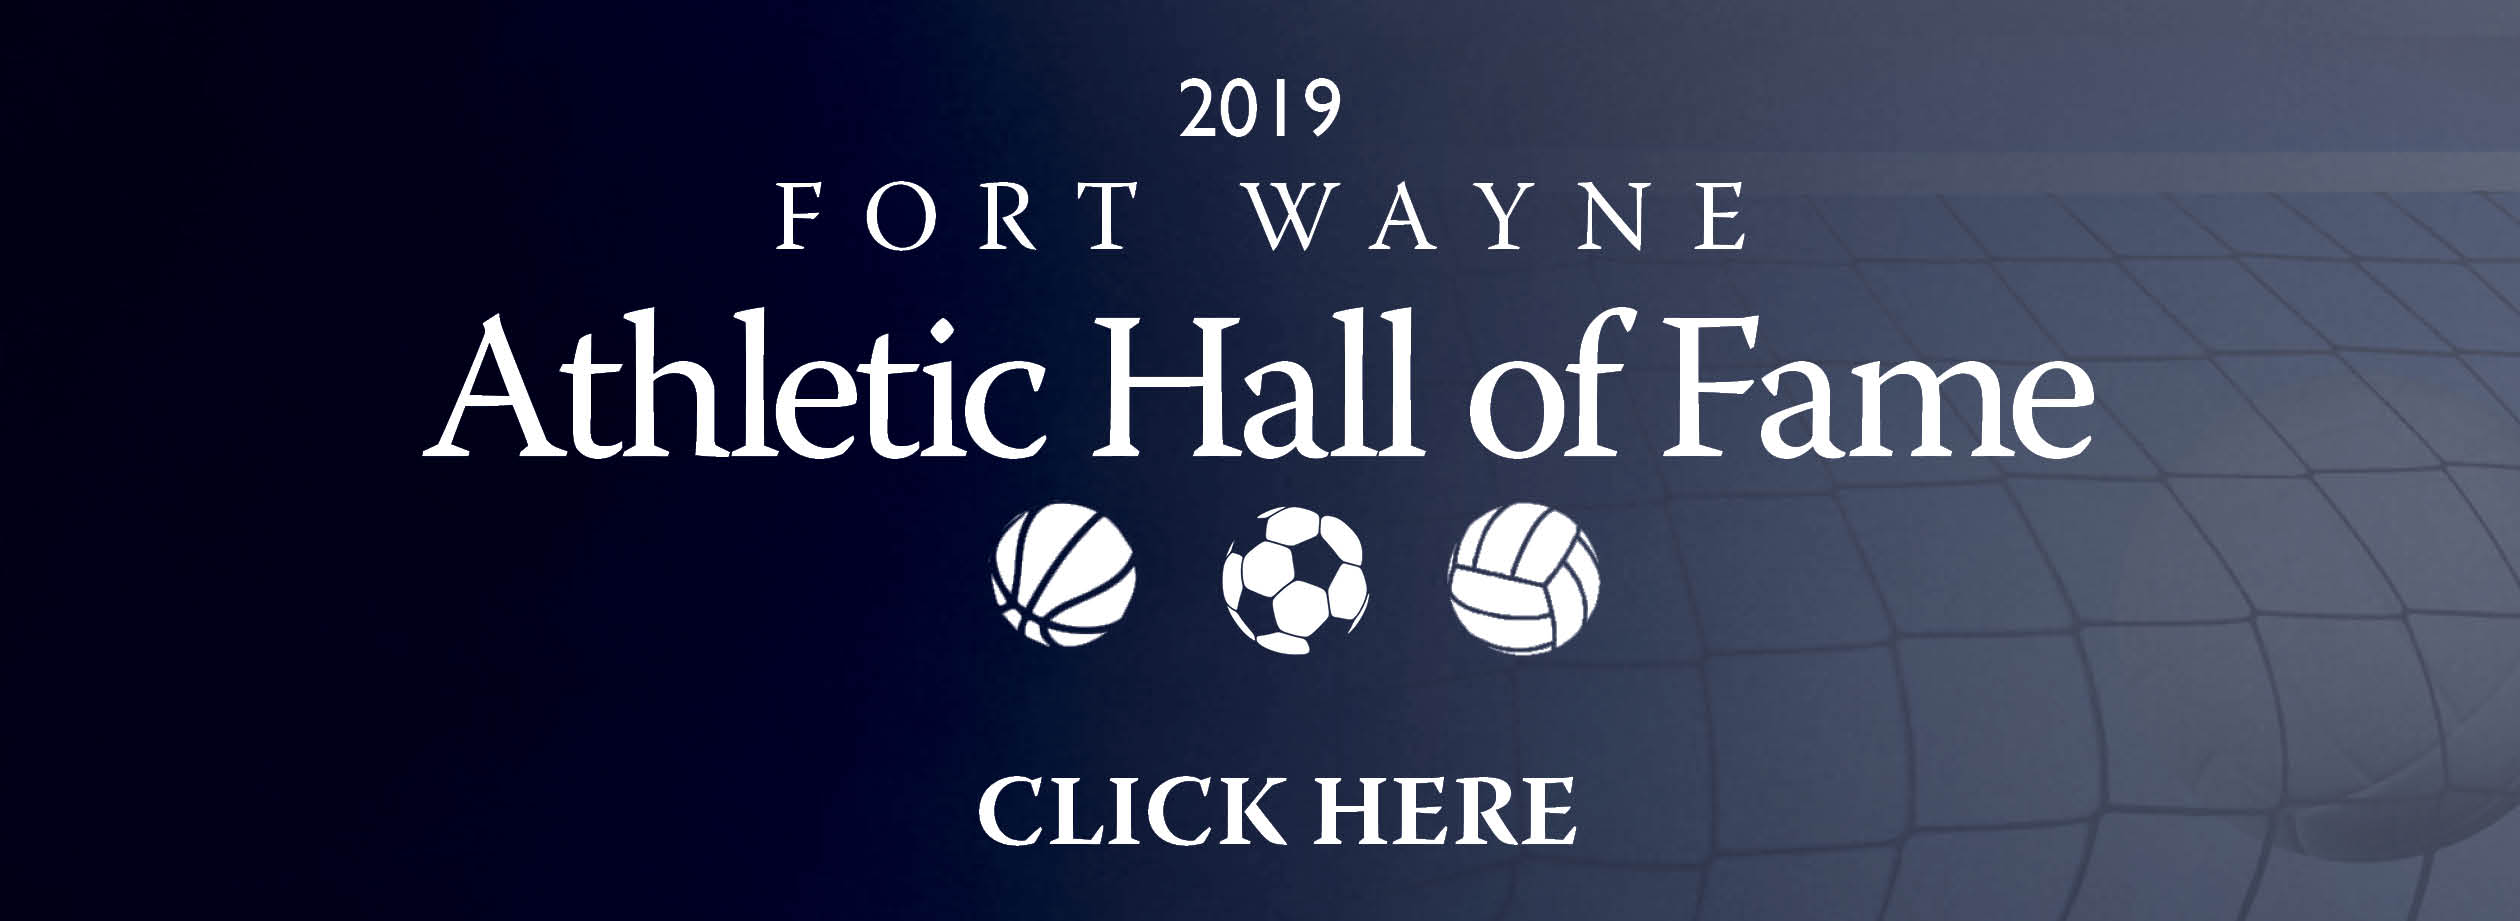 FW Athletic Hall of Fame